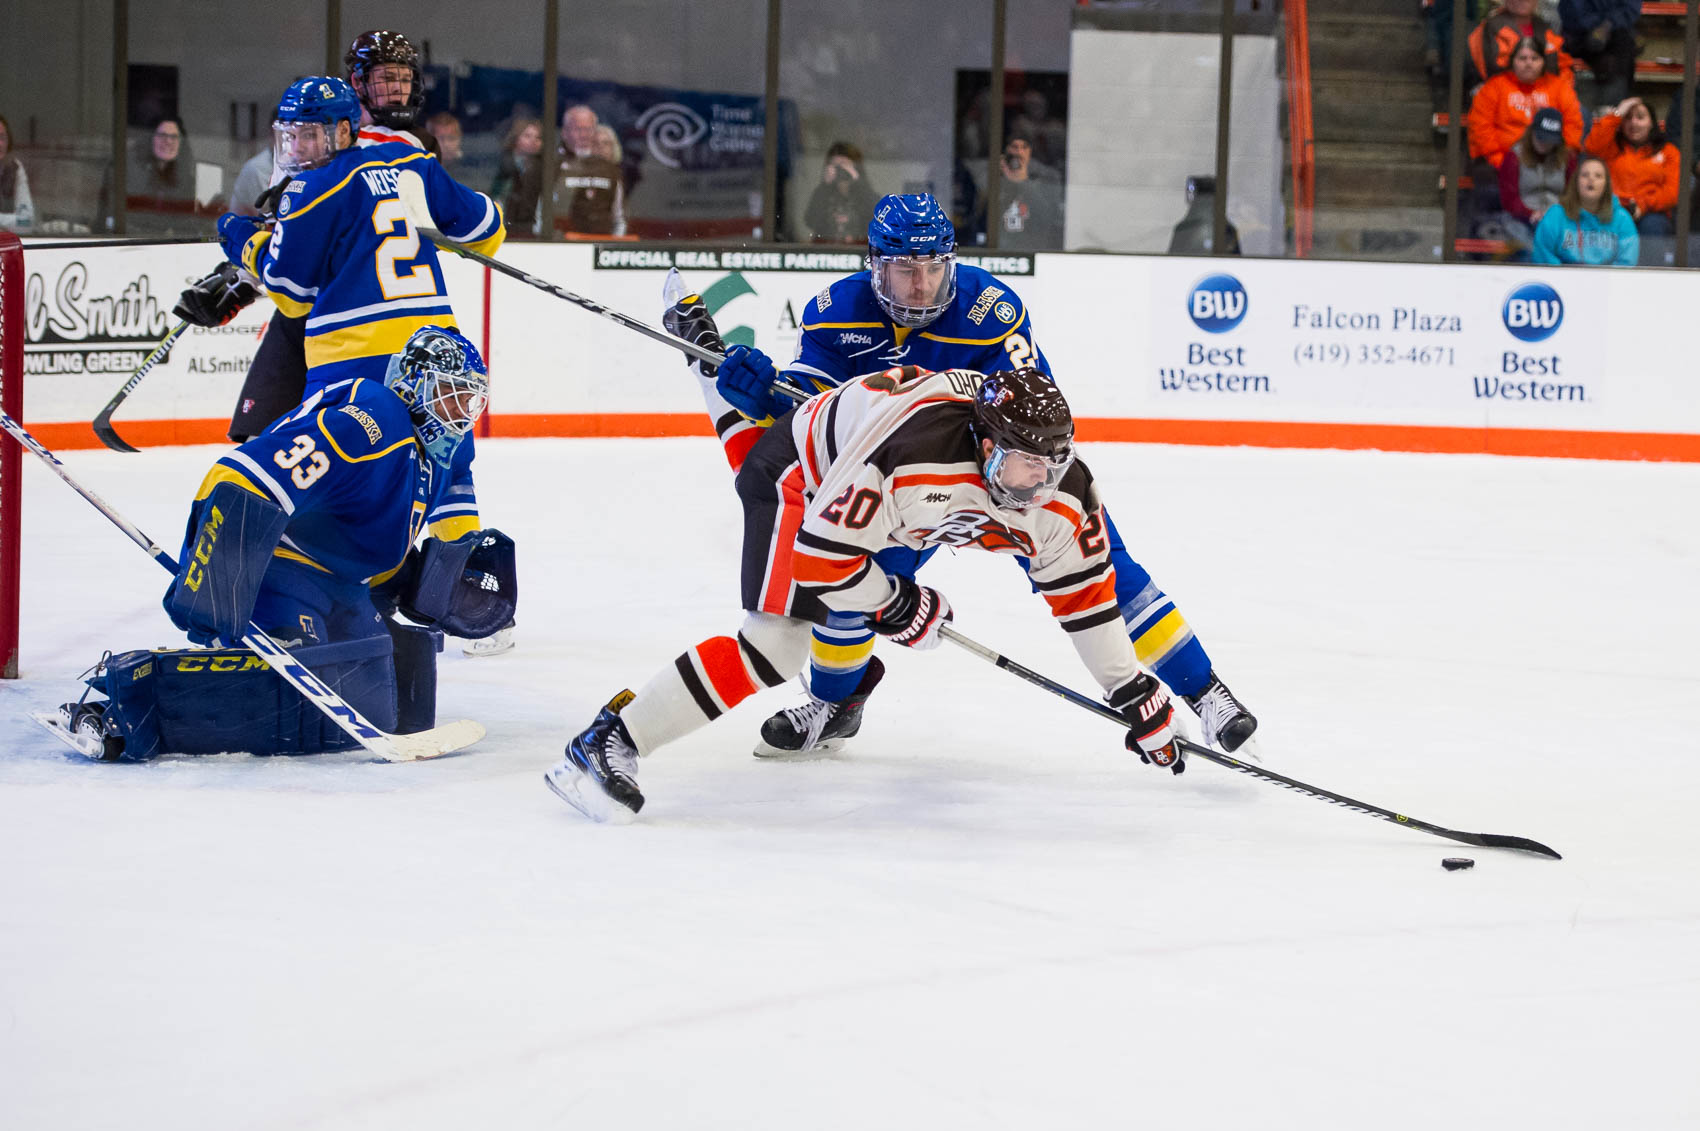 Falcons tie Nanooks 2-2, fall in shootout